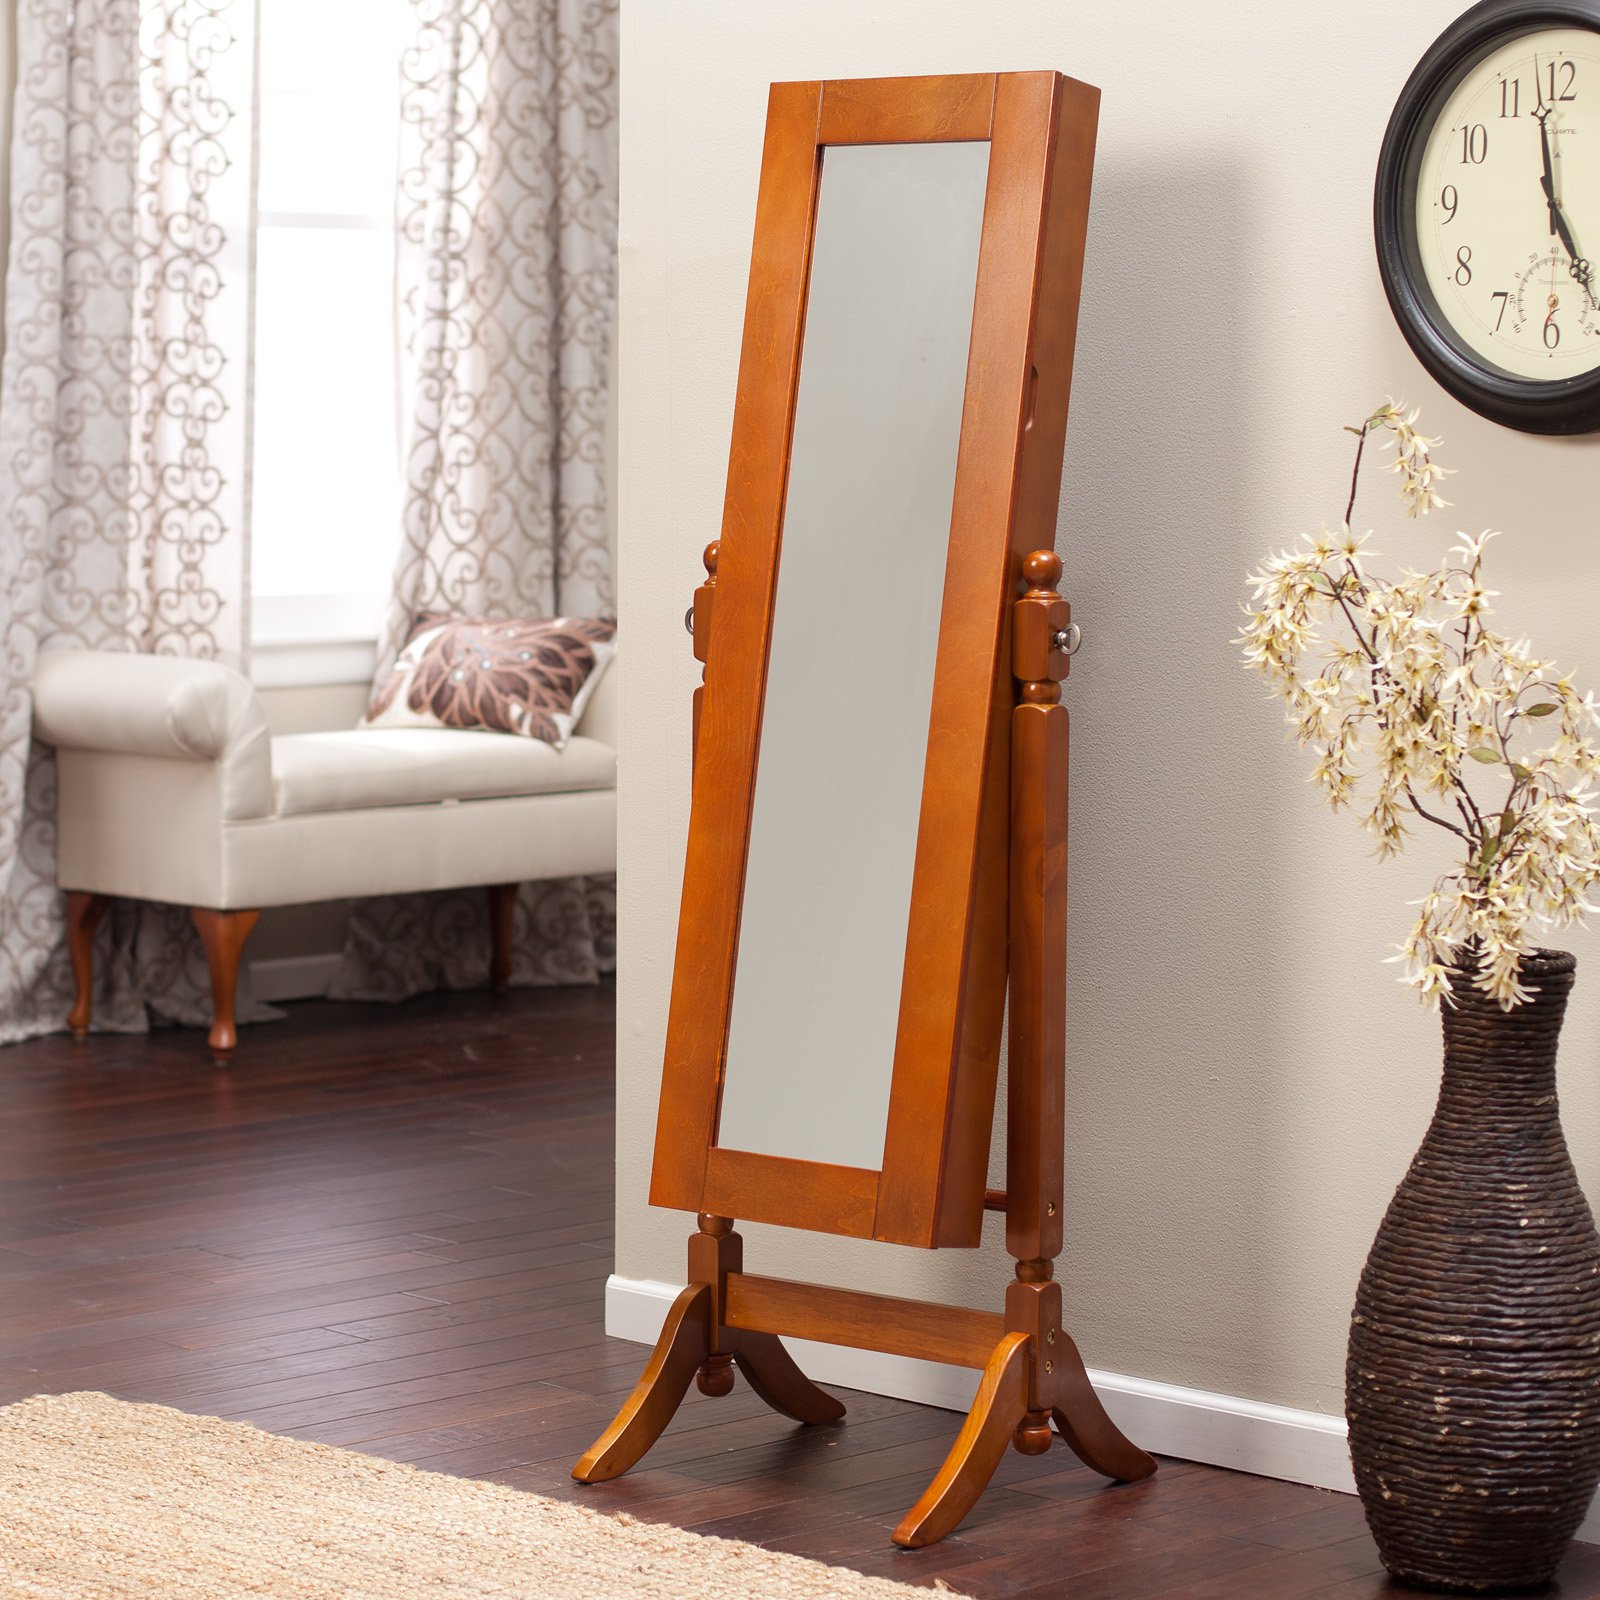 Heritage Jewelry Armoire Cheval Mirror Oak by 4 Seasons Global Inc